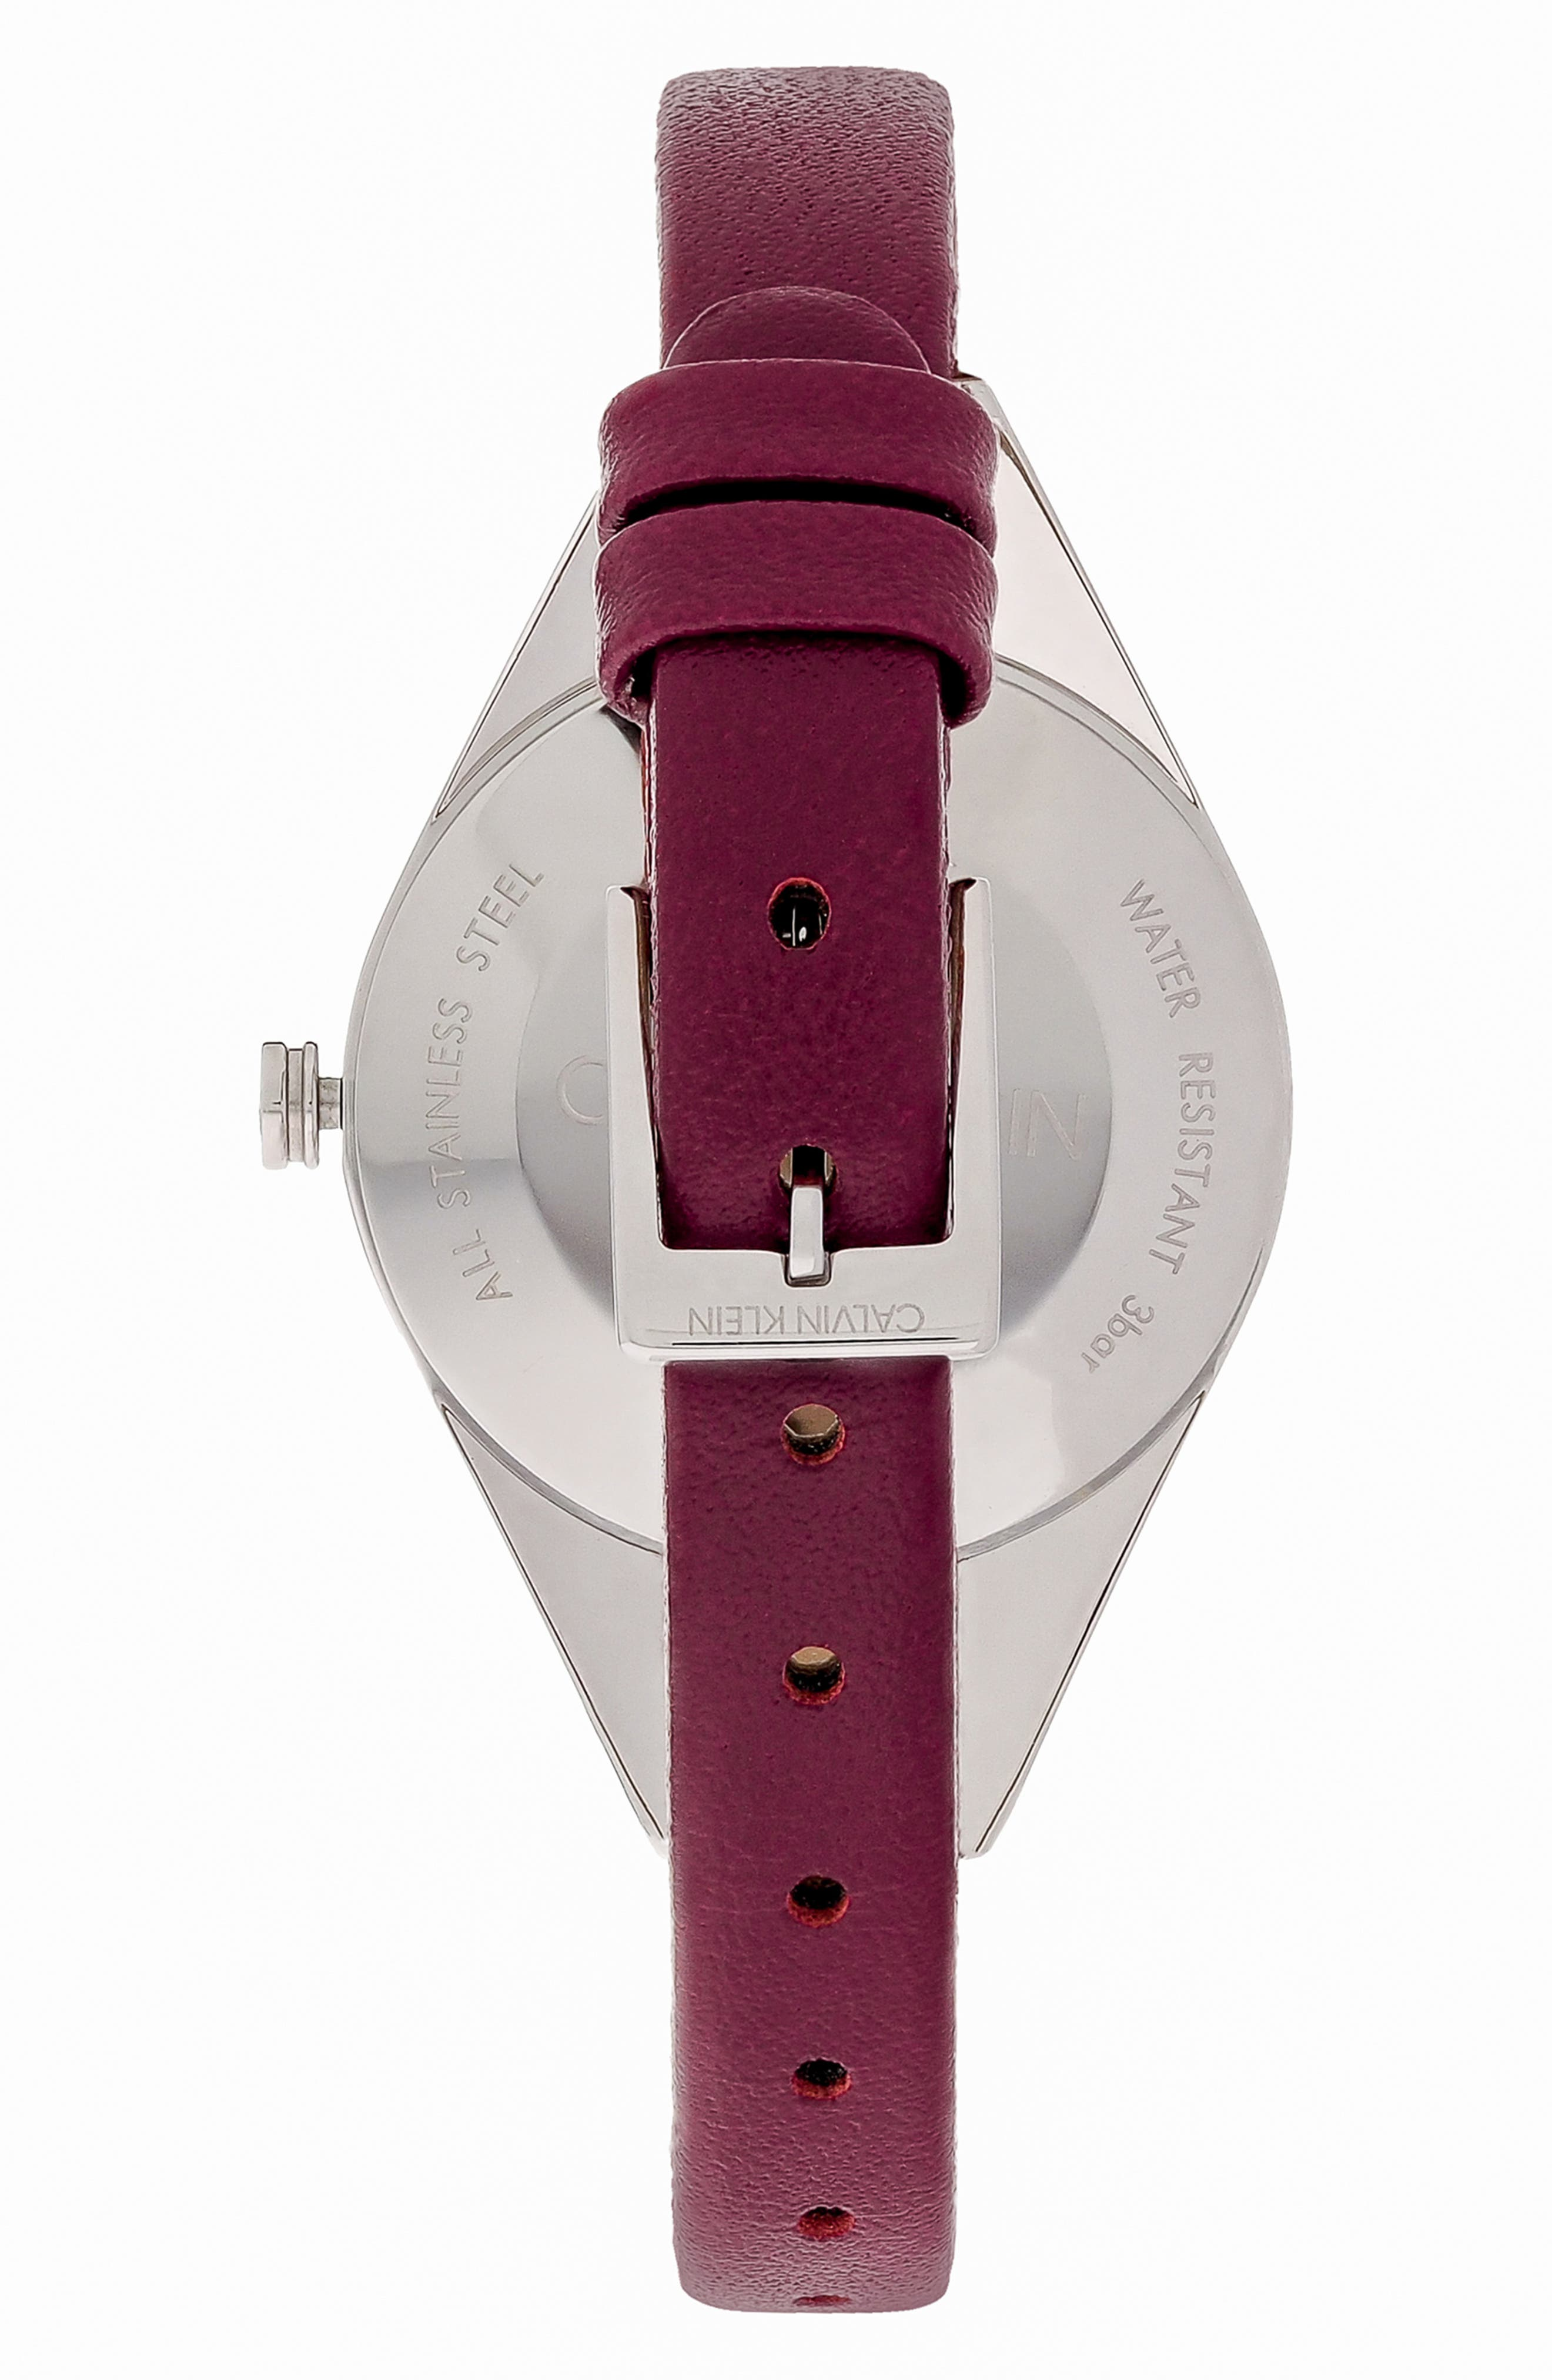 CALVIN KLEIN, Achieve Rebel Leather Band Watch, 29mm, Alternate thumbnail 2, color, RED/ BLUE/ SILVER